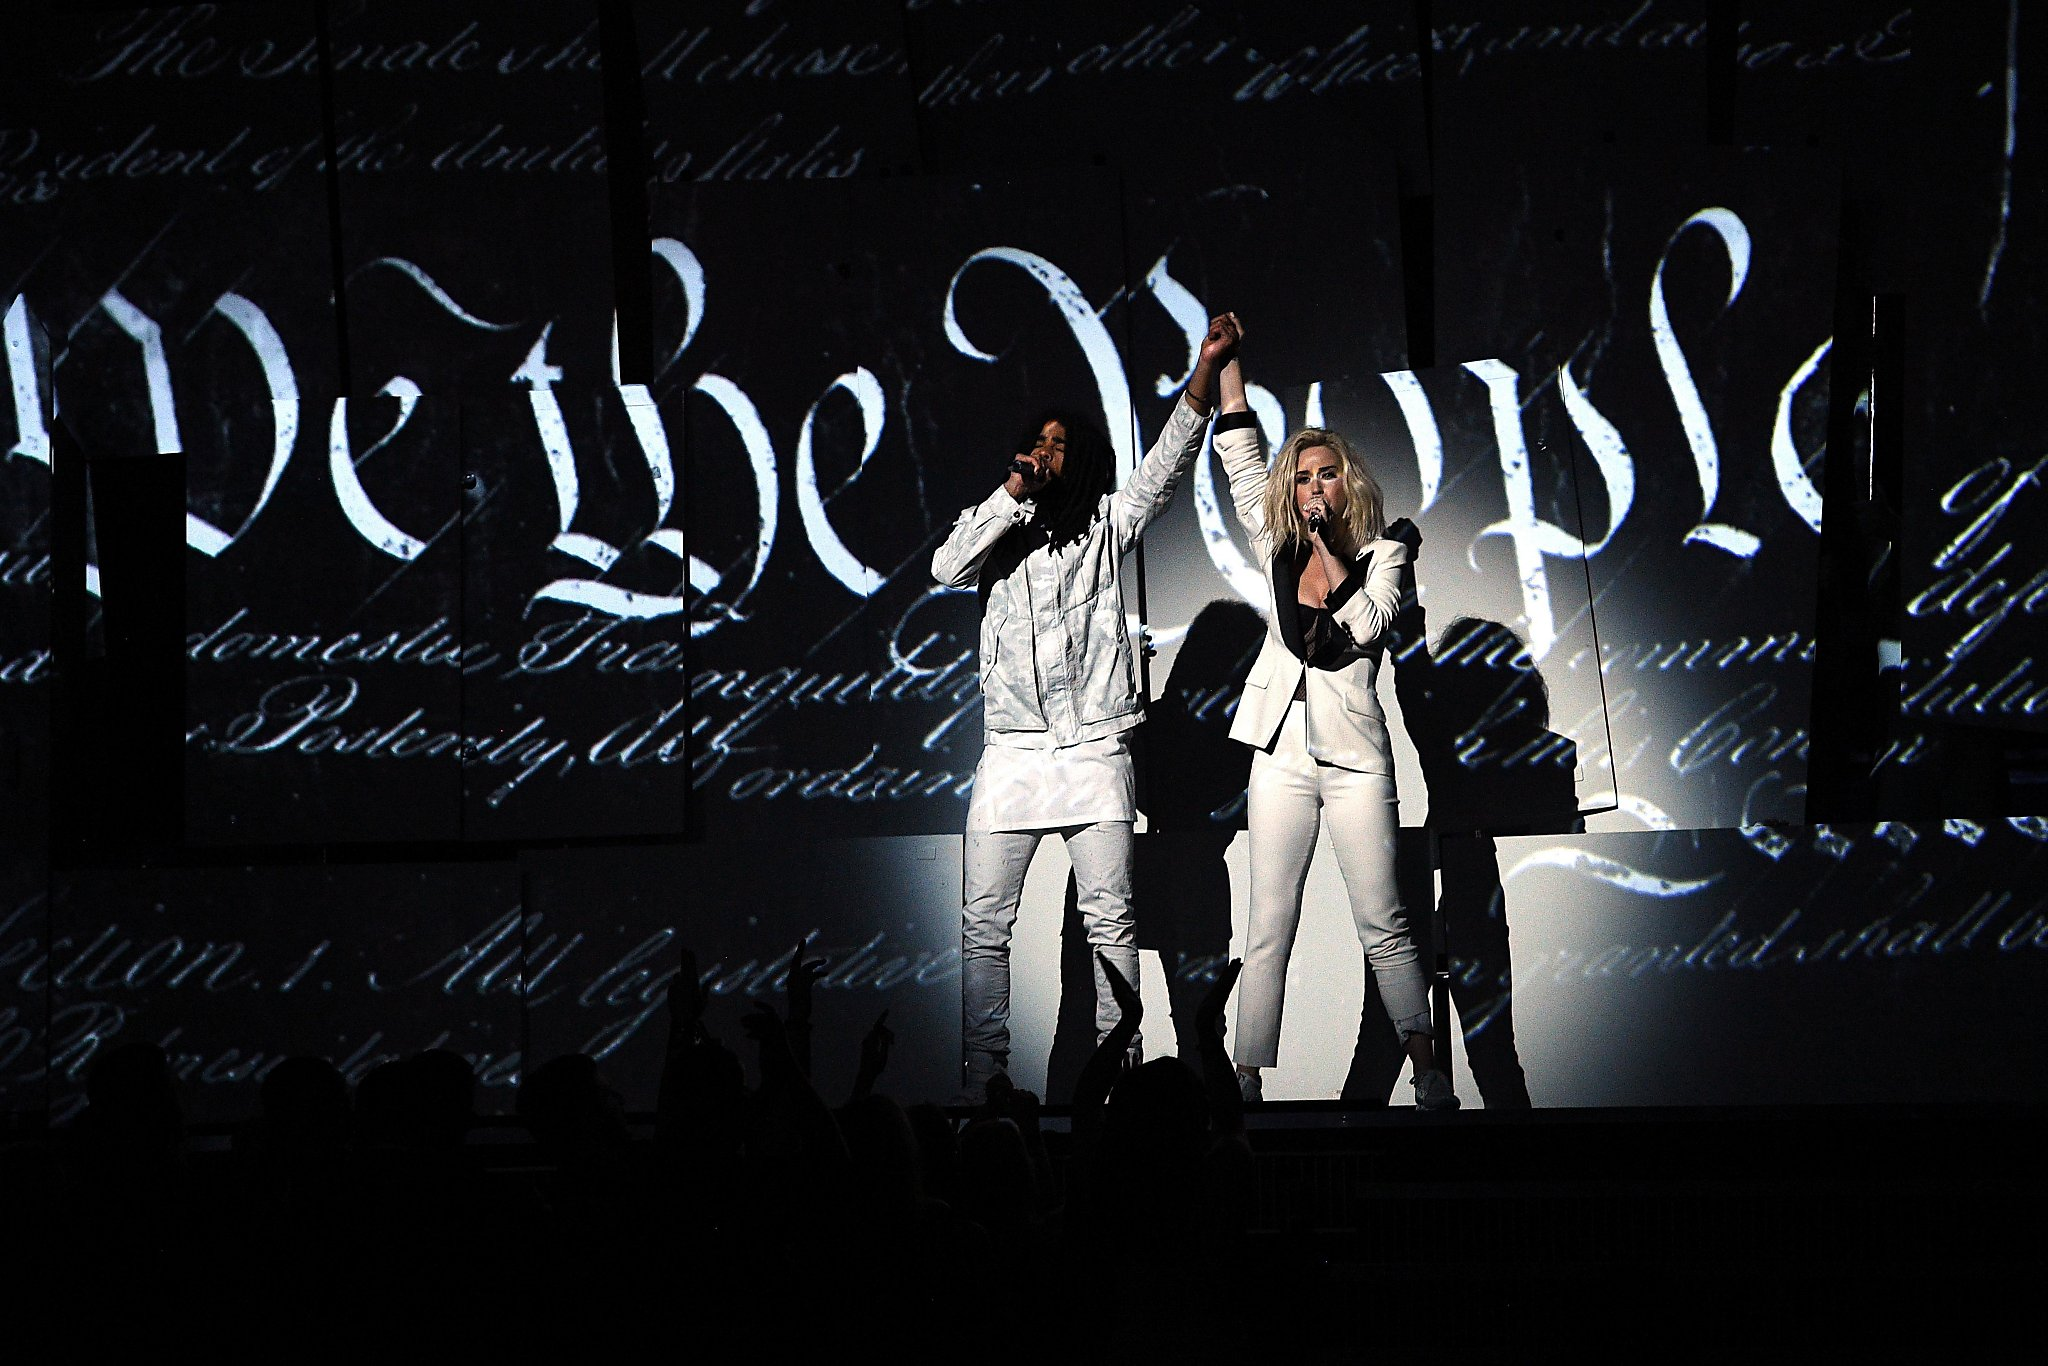 Politics in the spotlight at the Grammys